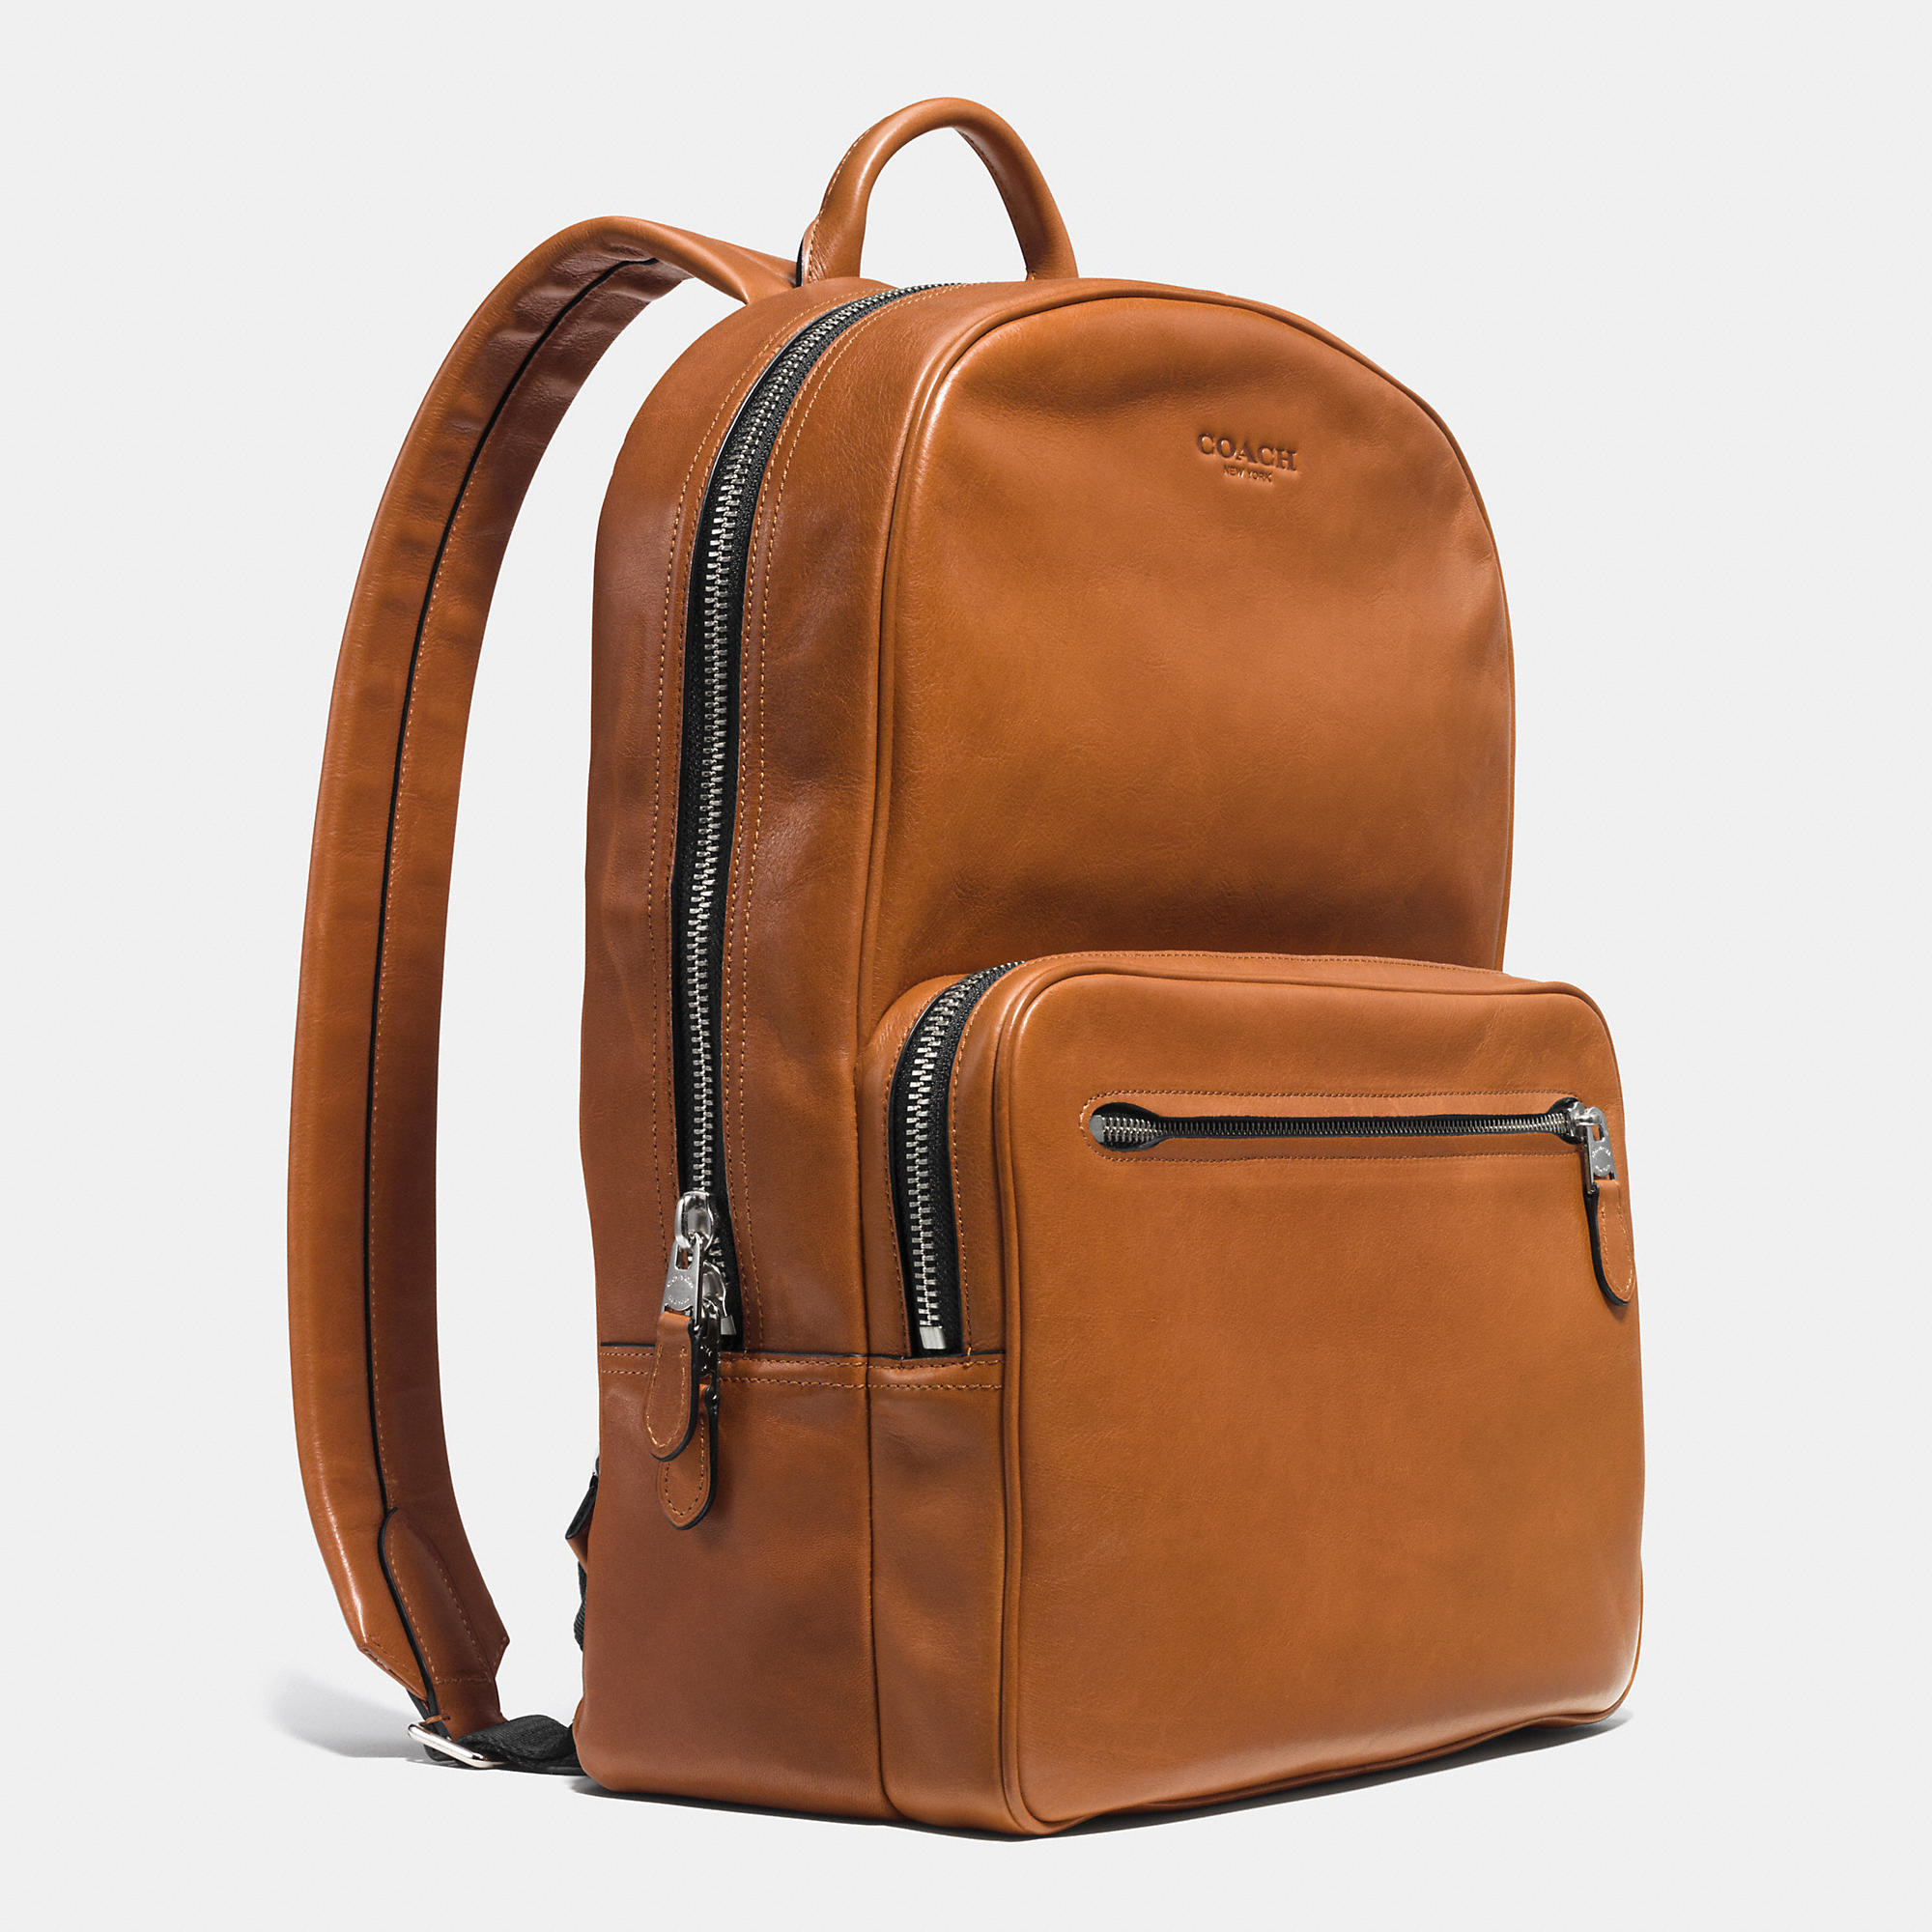 Lyst - COACH Hudson Backpack In Sport Calf Leather in Brown for Men 56bbba6891e43